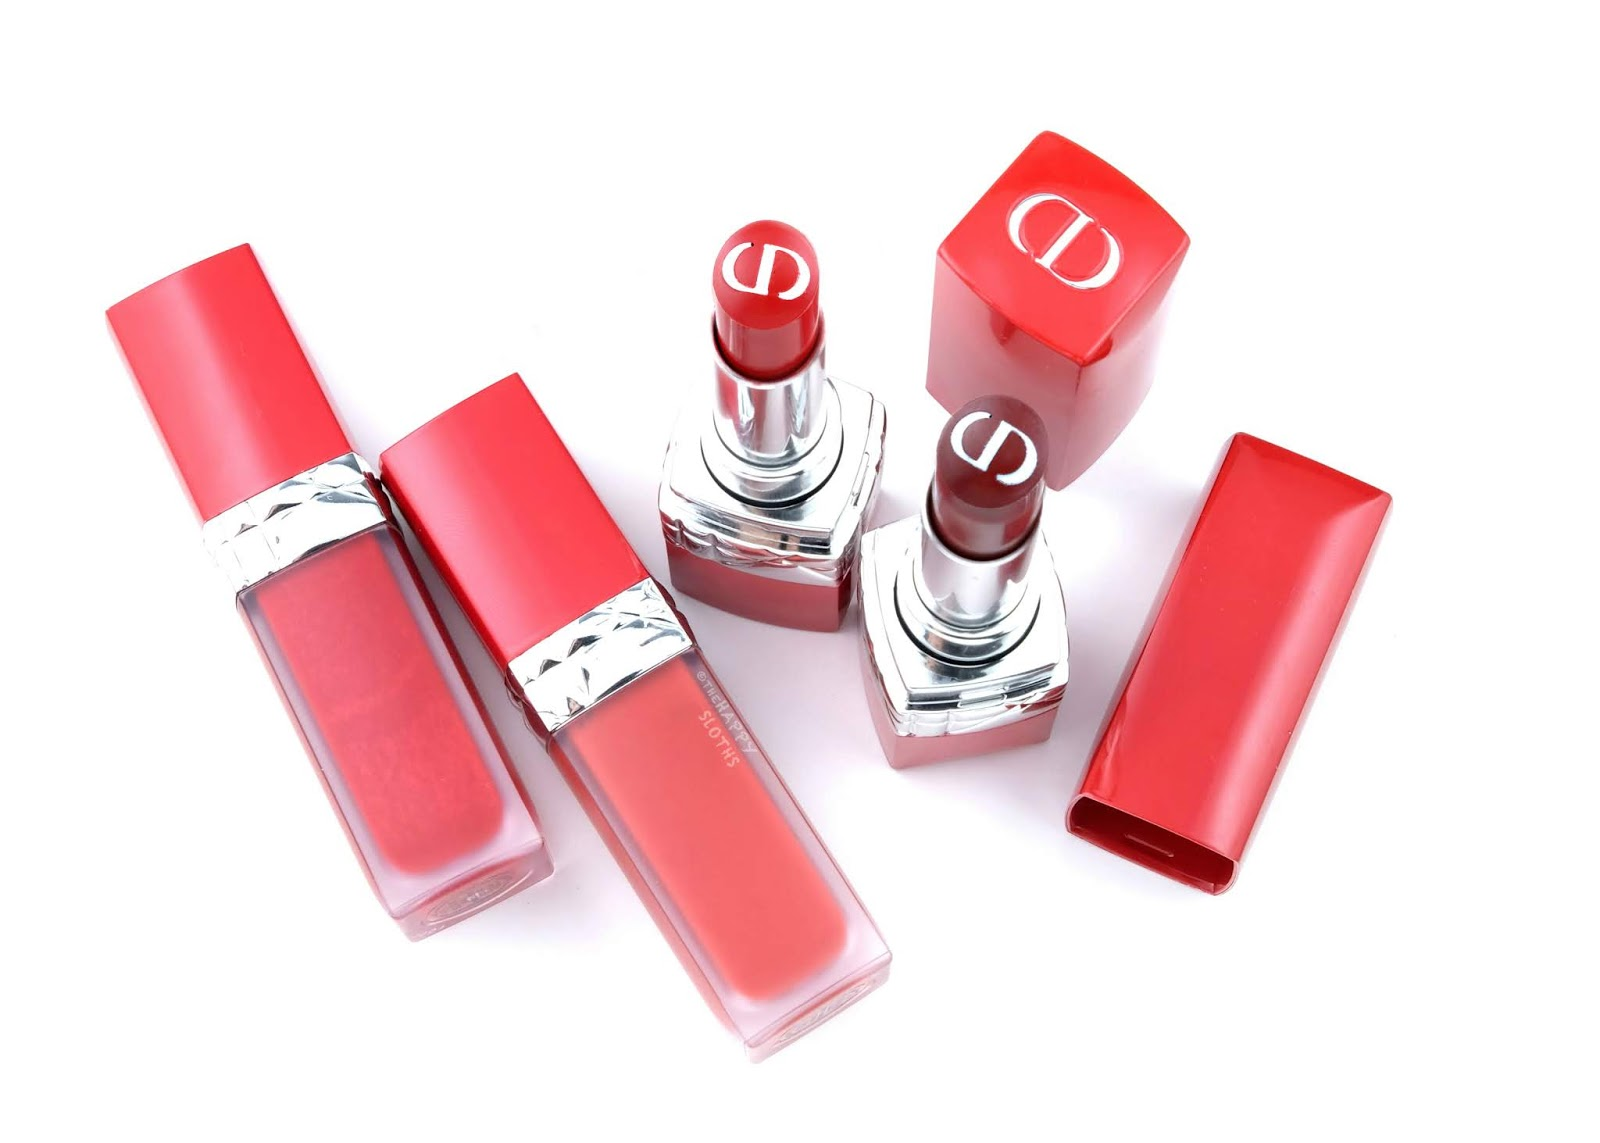 Dior | Rouge Dior Ultra Care Lipstick & Ultra Care Liquid Lipstick: Review and Swatches